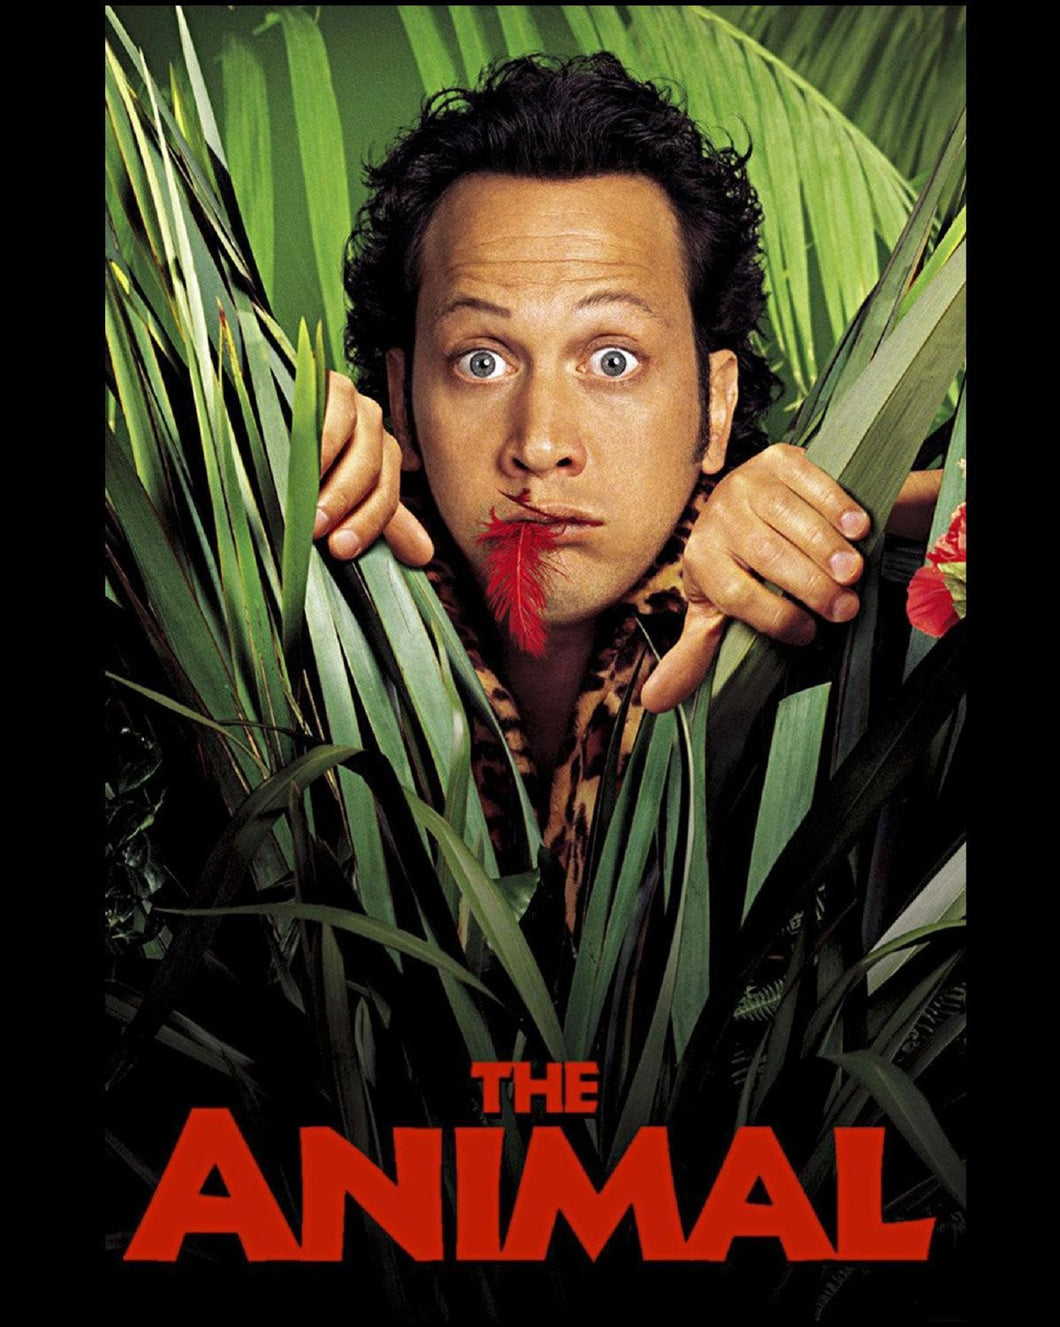 Rob Schneider - Signed The Animal Image (8x10, 11x14)